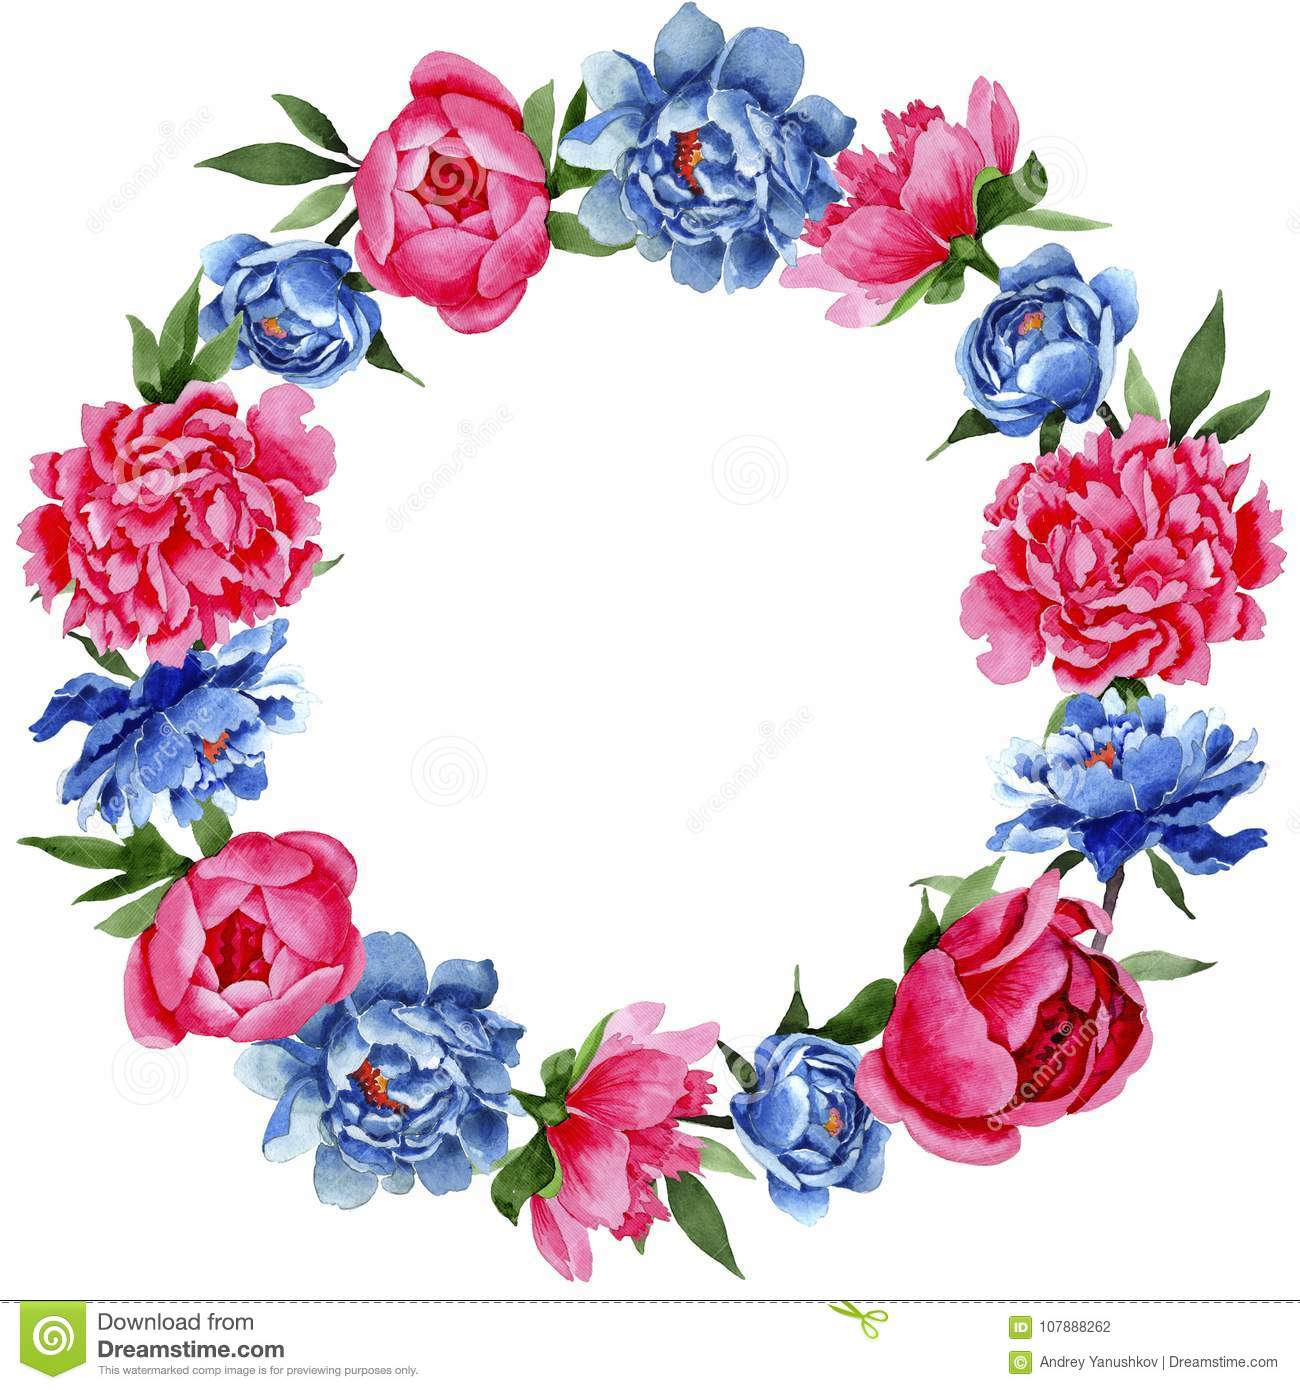 Wildflower Red And Blue Peonies Flowers Wreath In A Watercolor Style Stock Illustration Illustration Of Sprout Natural 107888262